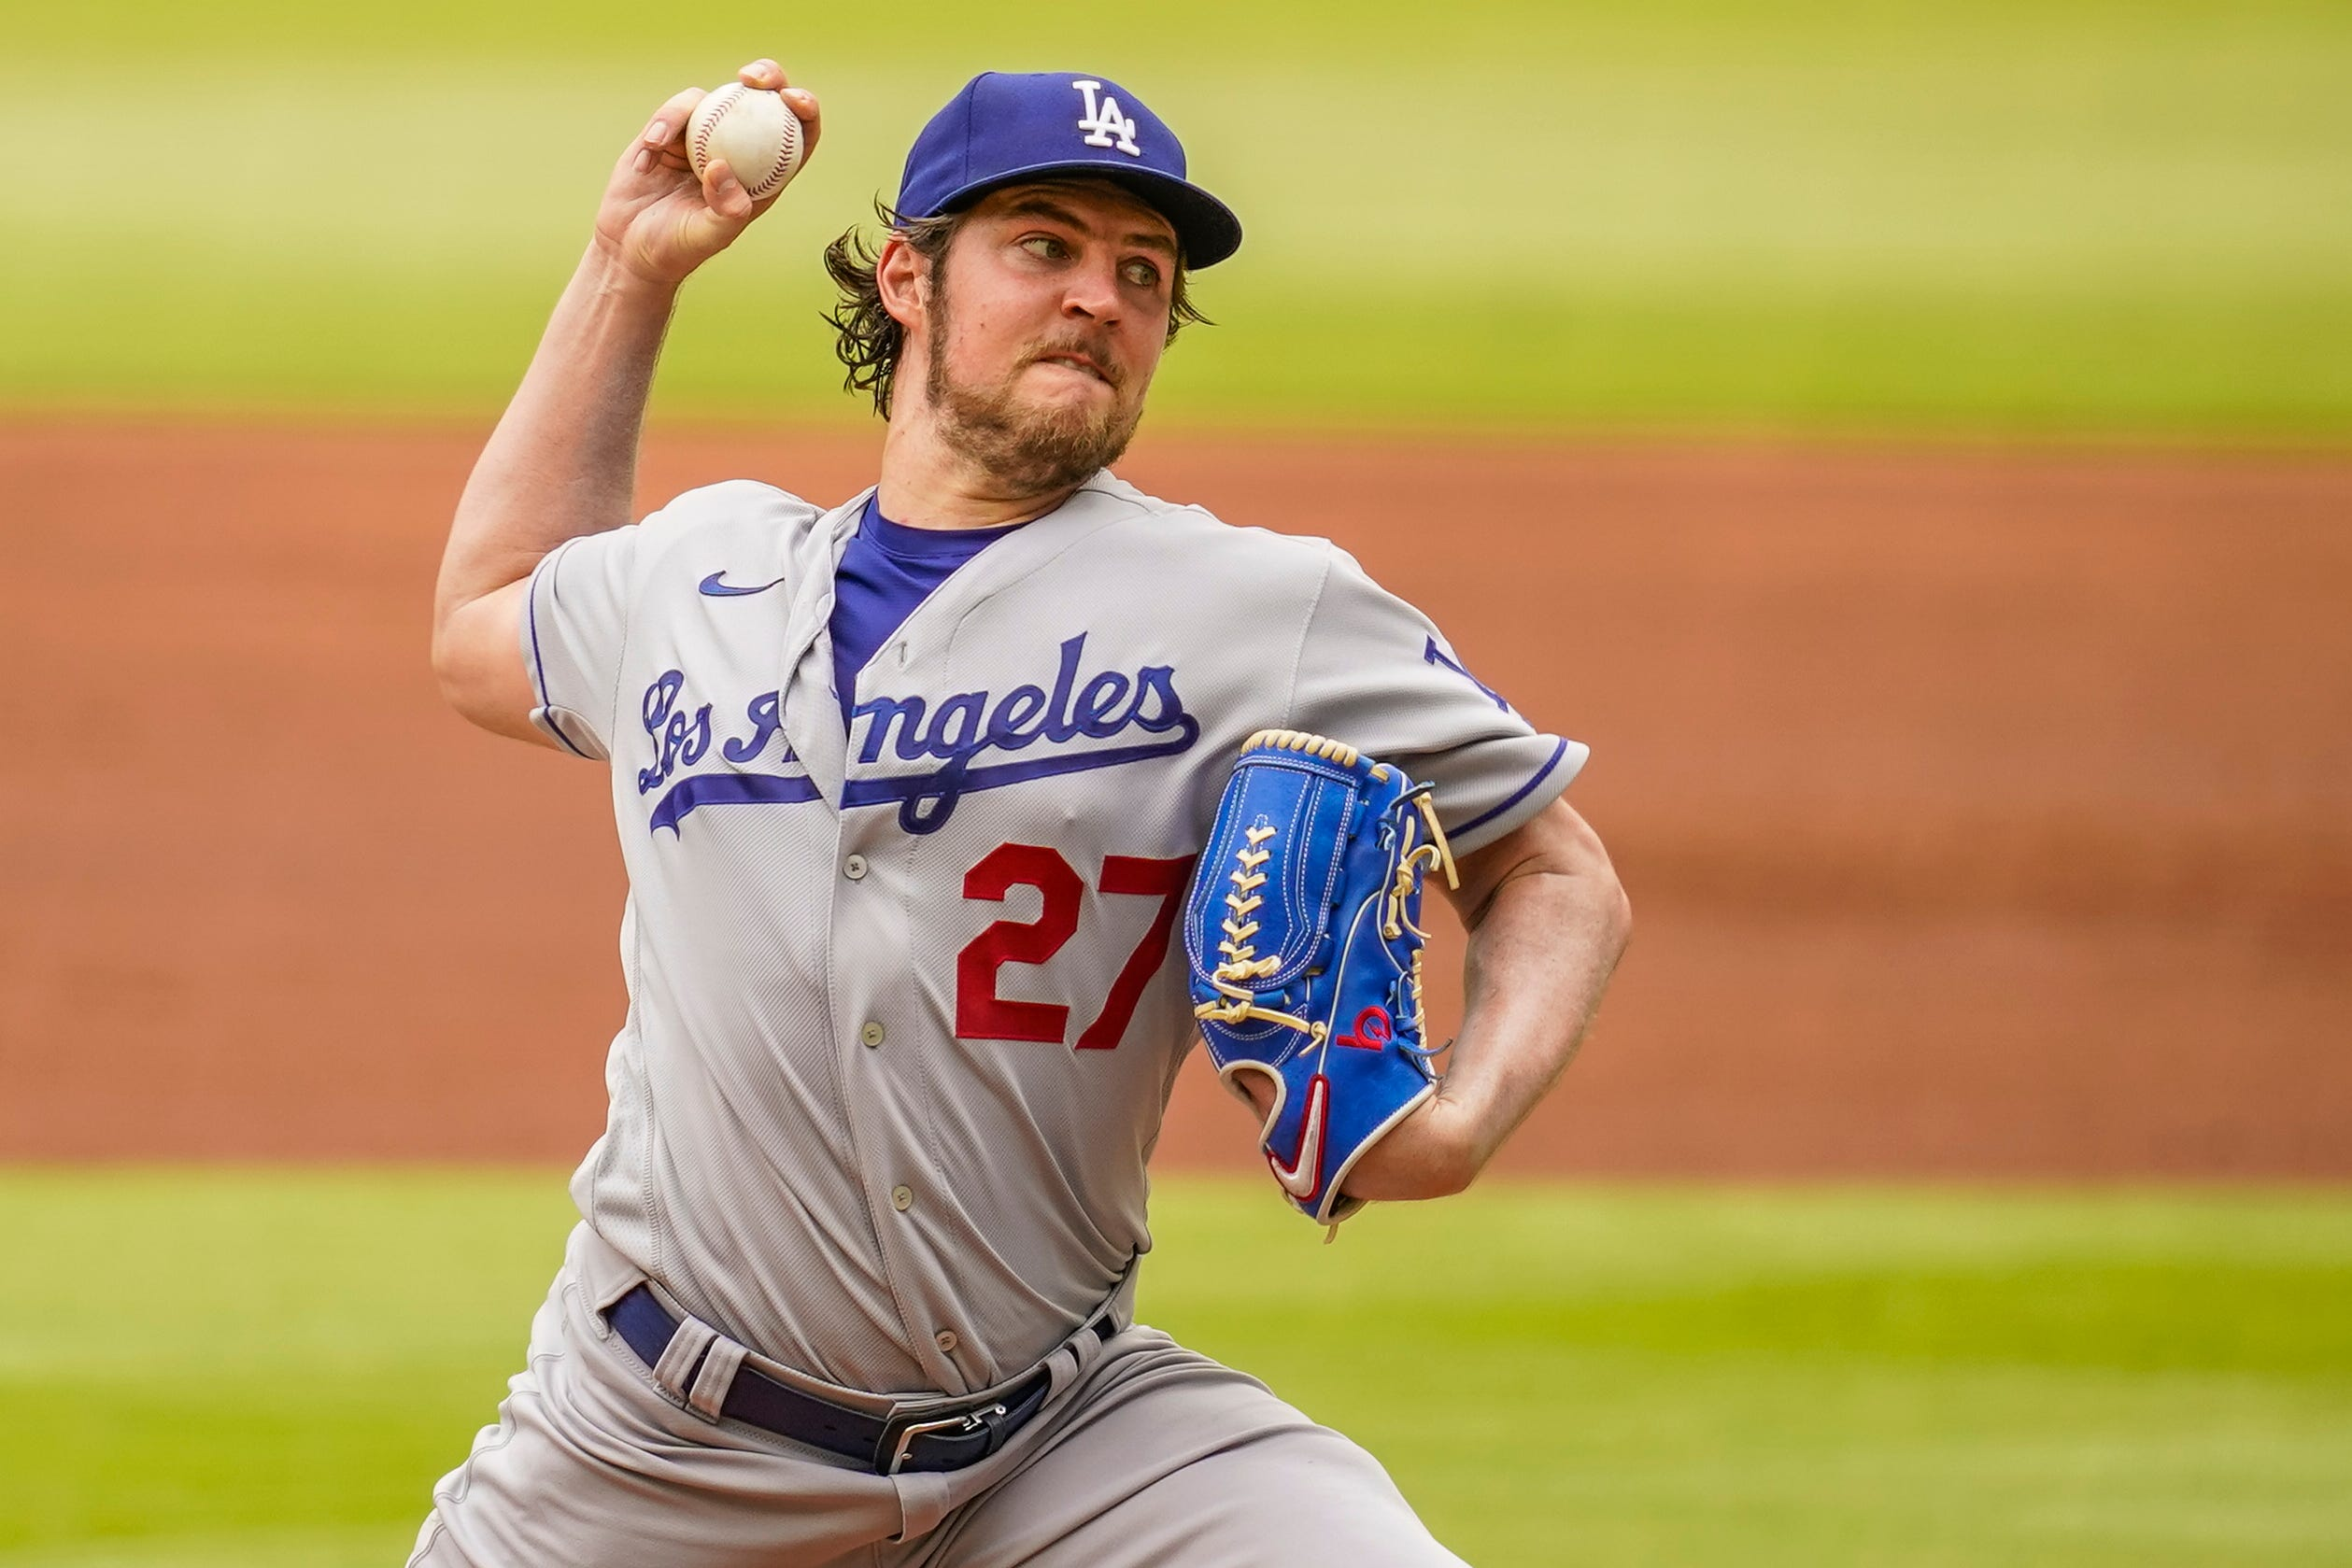 How much does spin rate factor into the success of MLB's top pitchers?